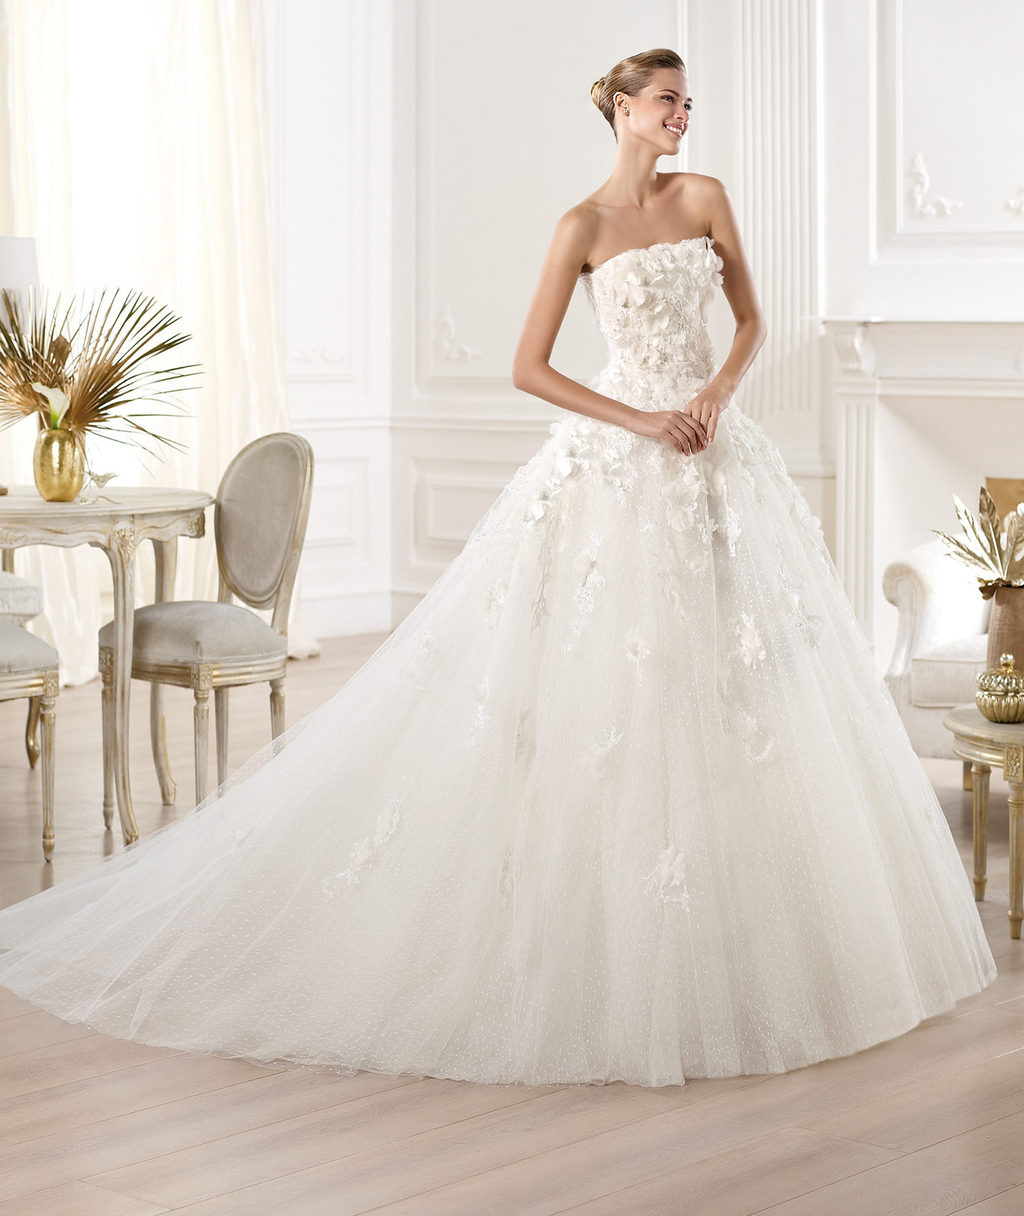 Elie-saab-wedding-dress-2014-pronovias-bridal-mensa.full